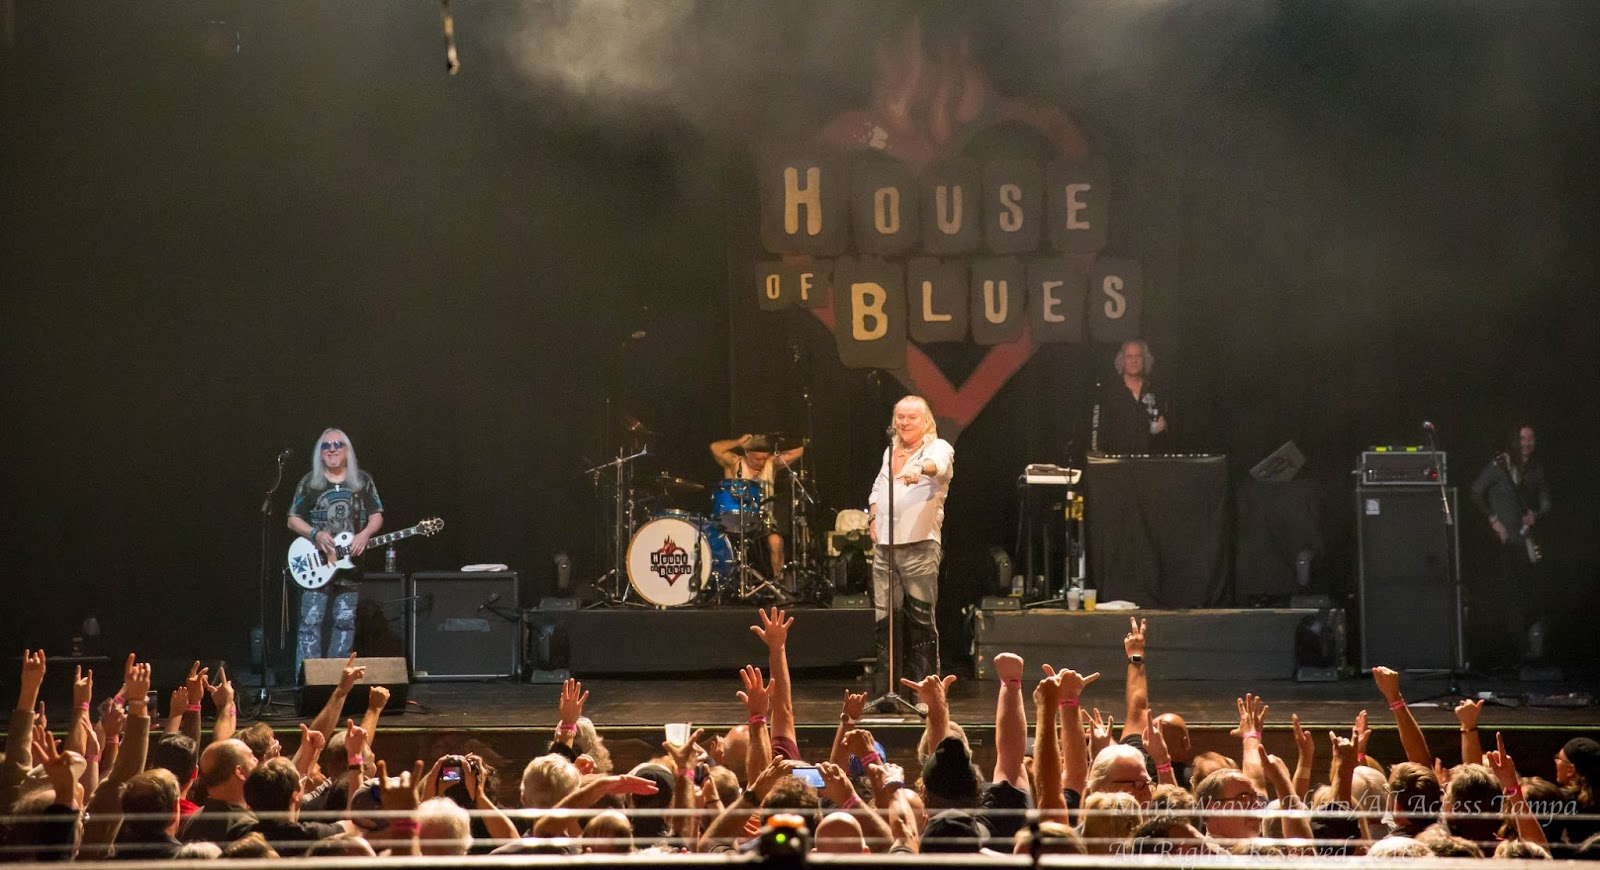 THE CLASSIC ROCK MUSIC REPORTER: MICK BOX OF URIAH HEEP FROM HOUSE